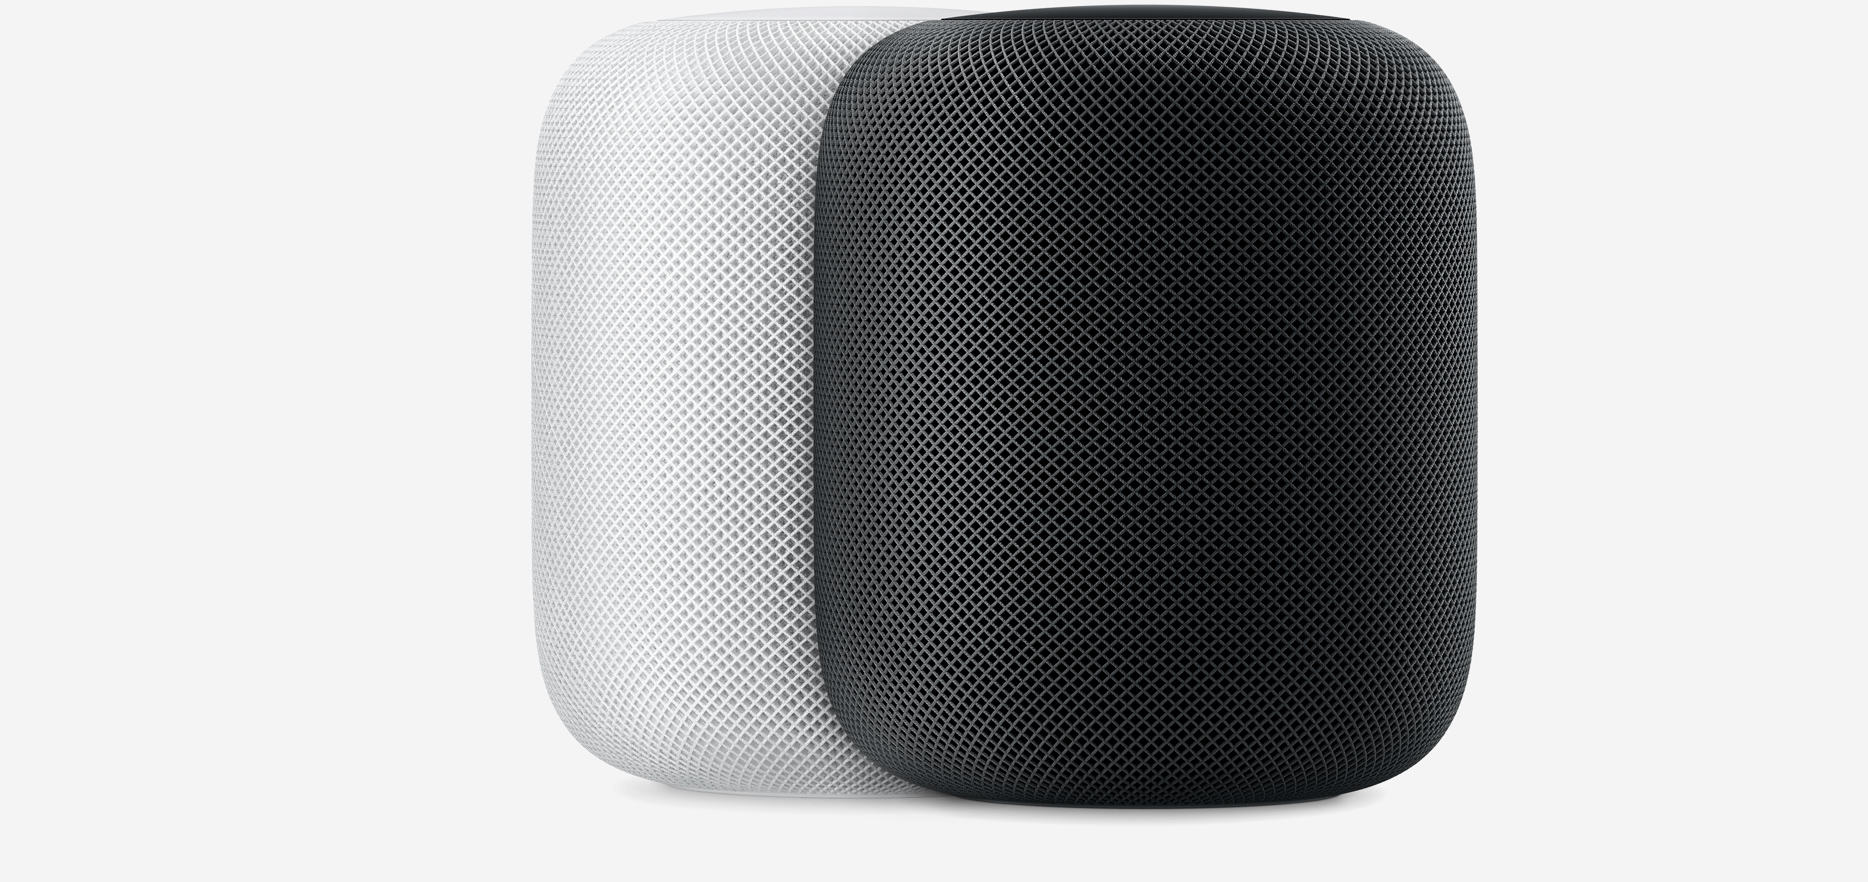 homepod-hero-select-201801.png